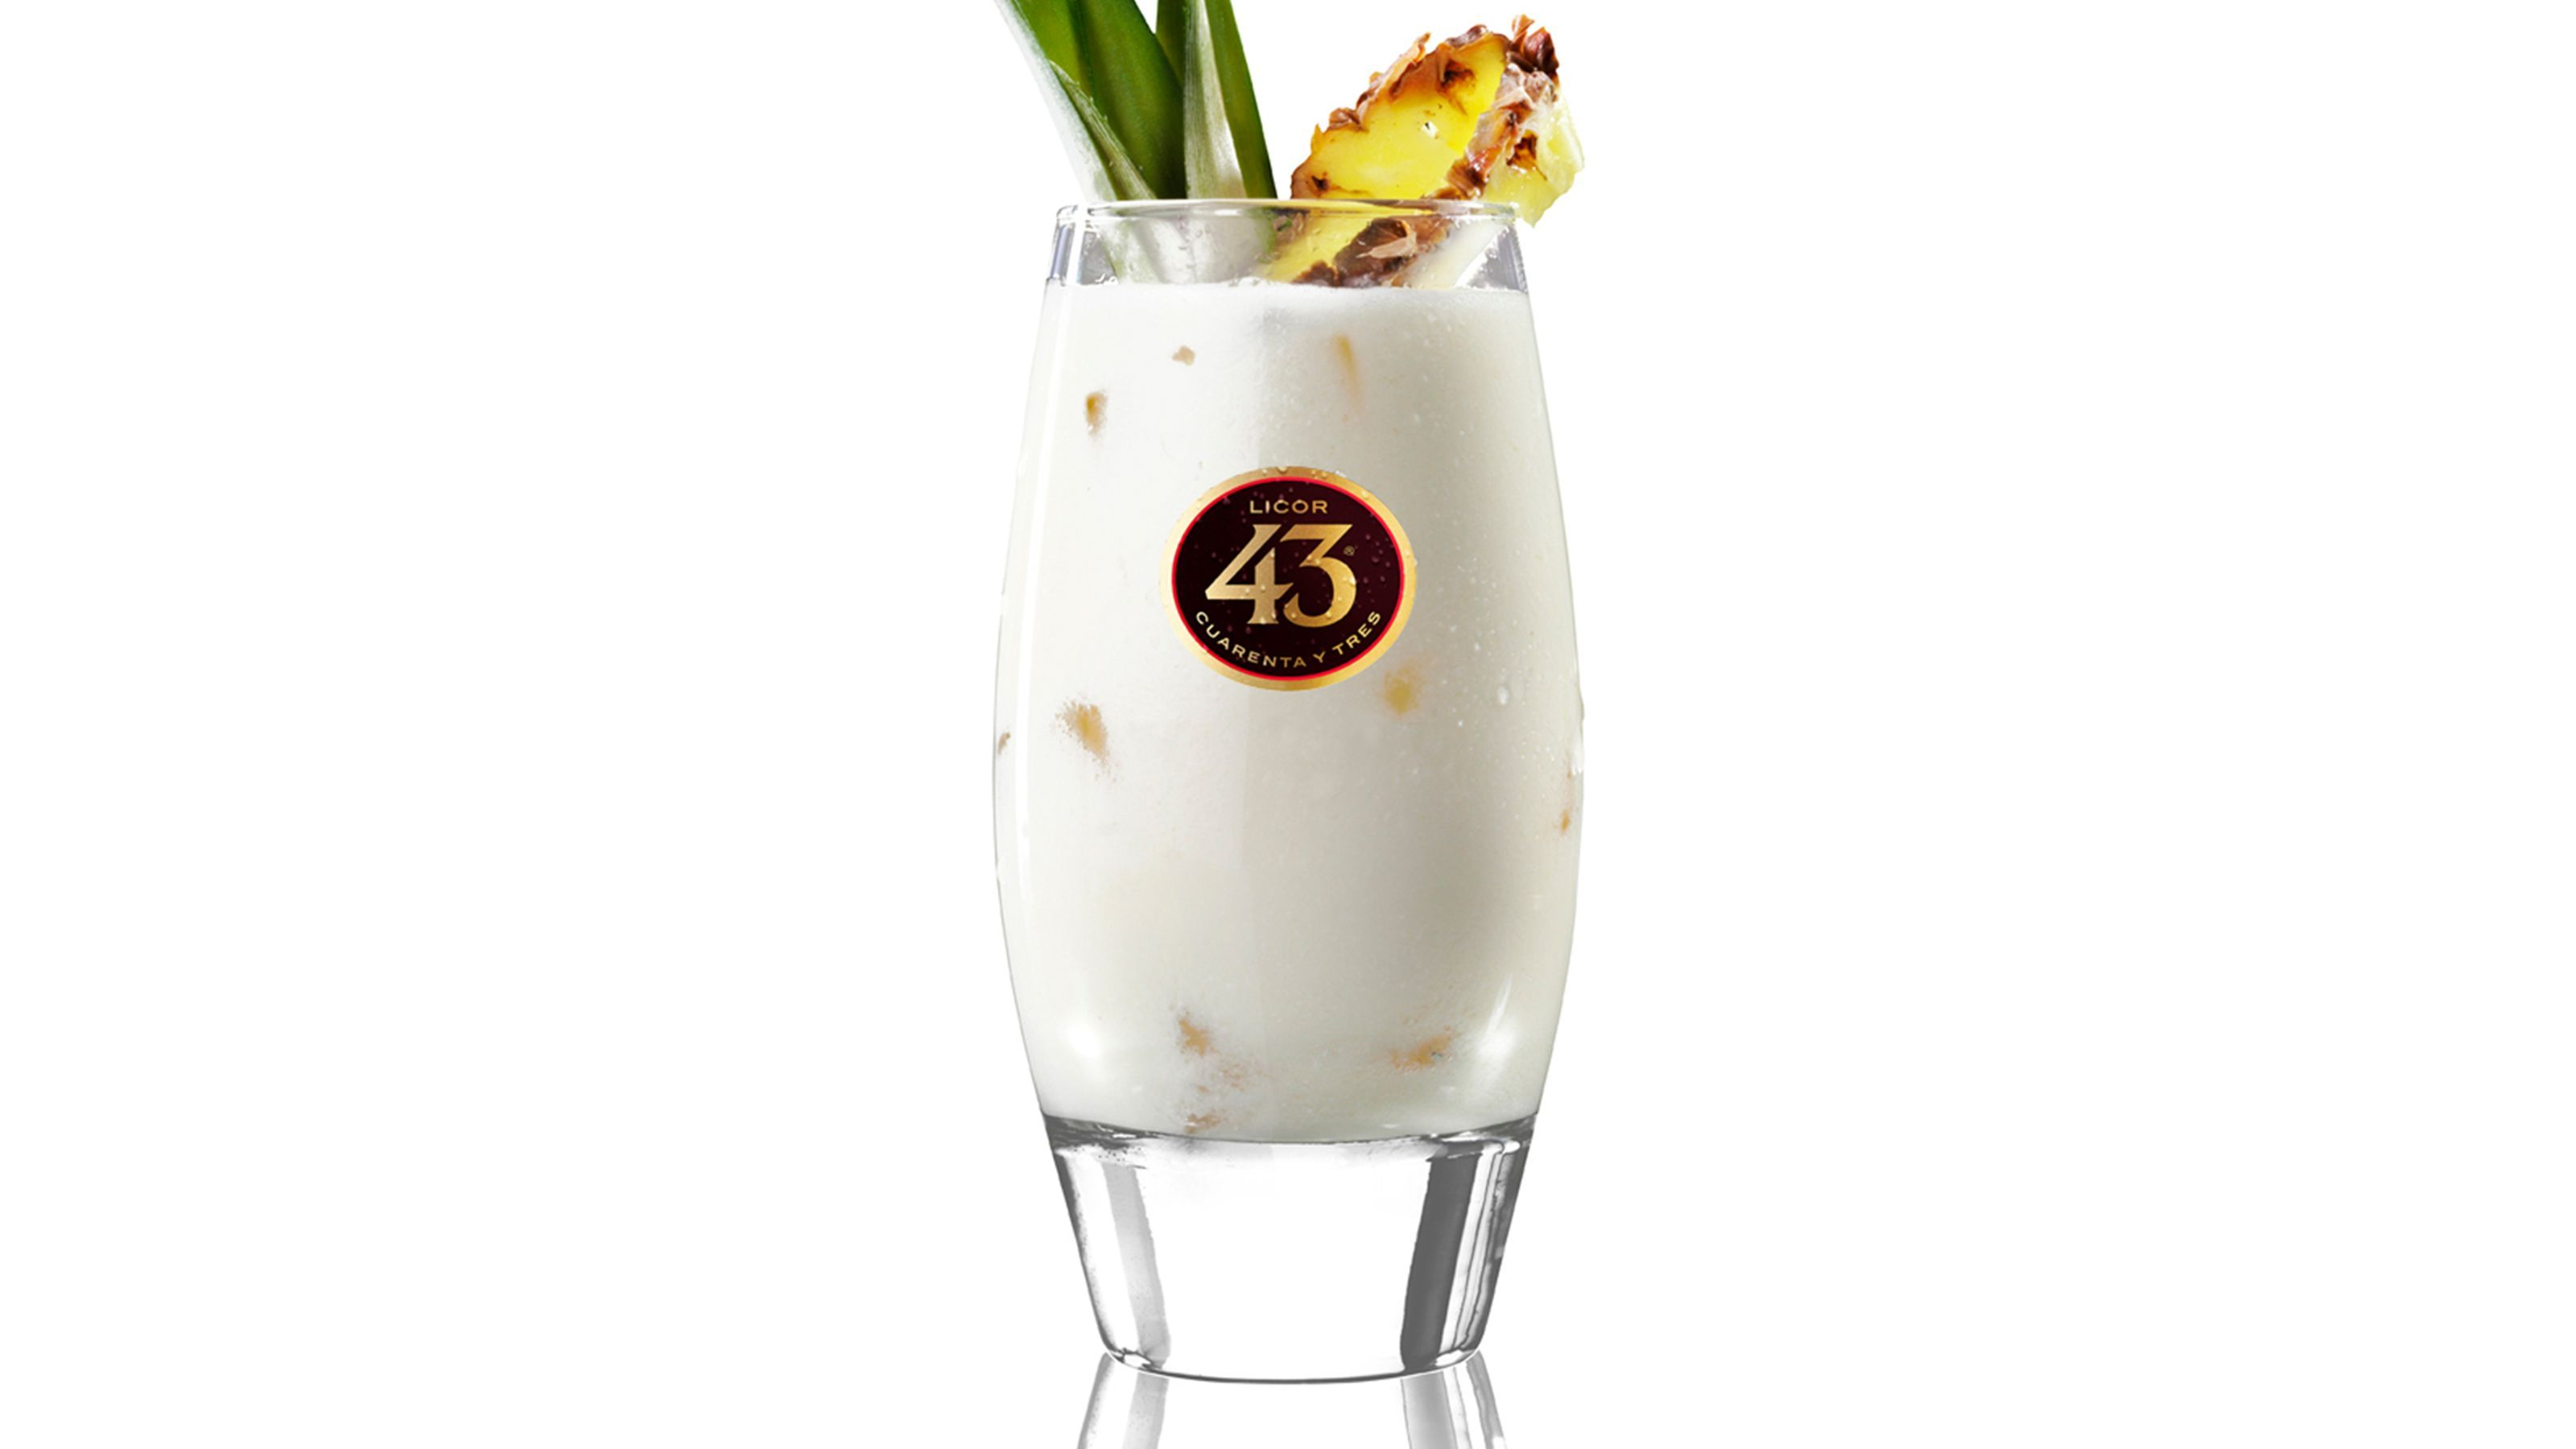 Pina colada cocktail rezept  Piña Colada 43 | Beverages | Pinterest | Longdrinks, Cocktail ...